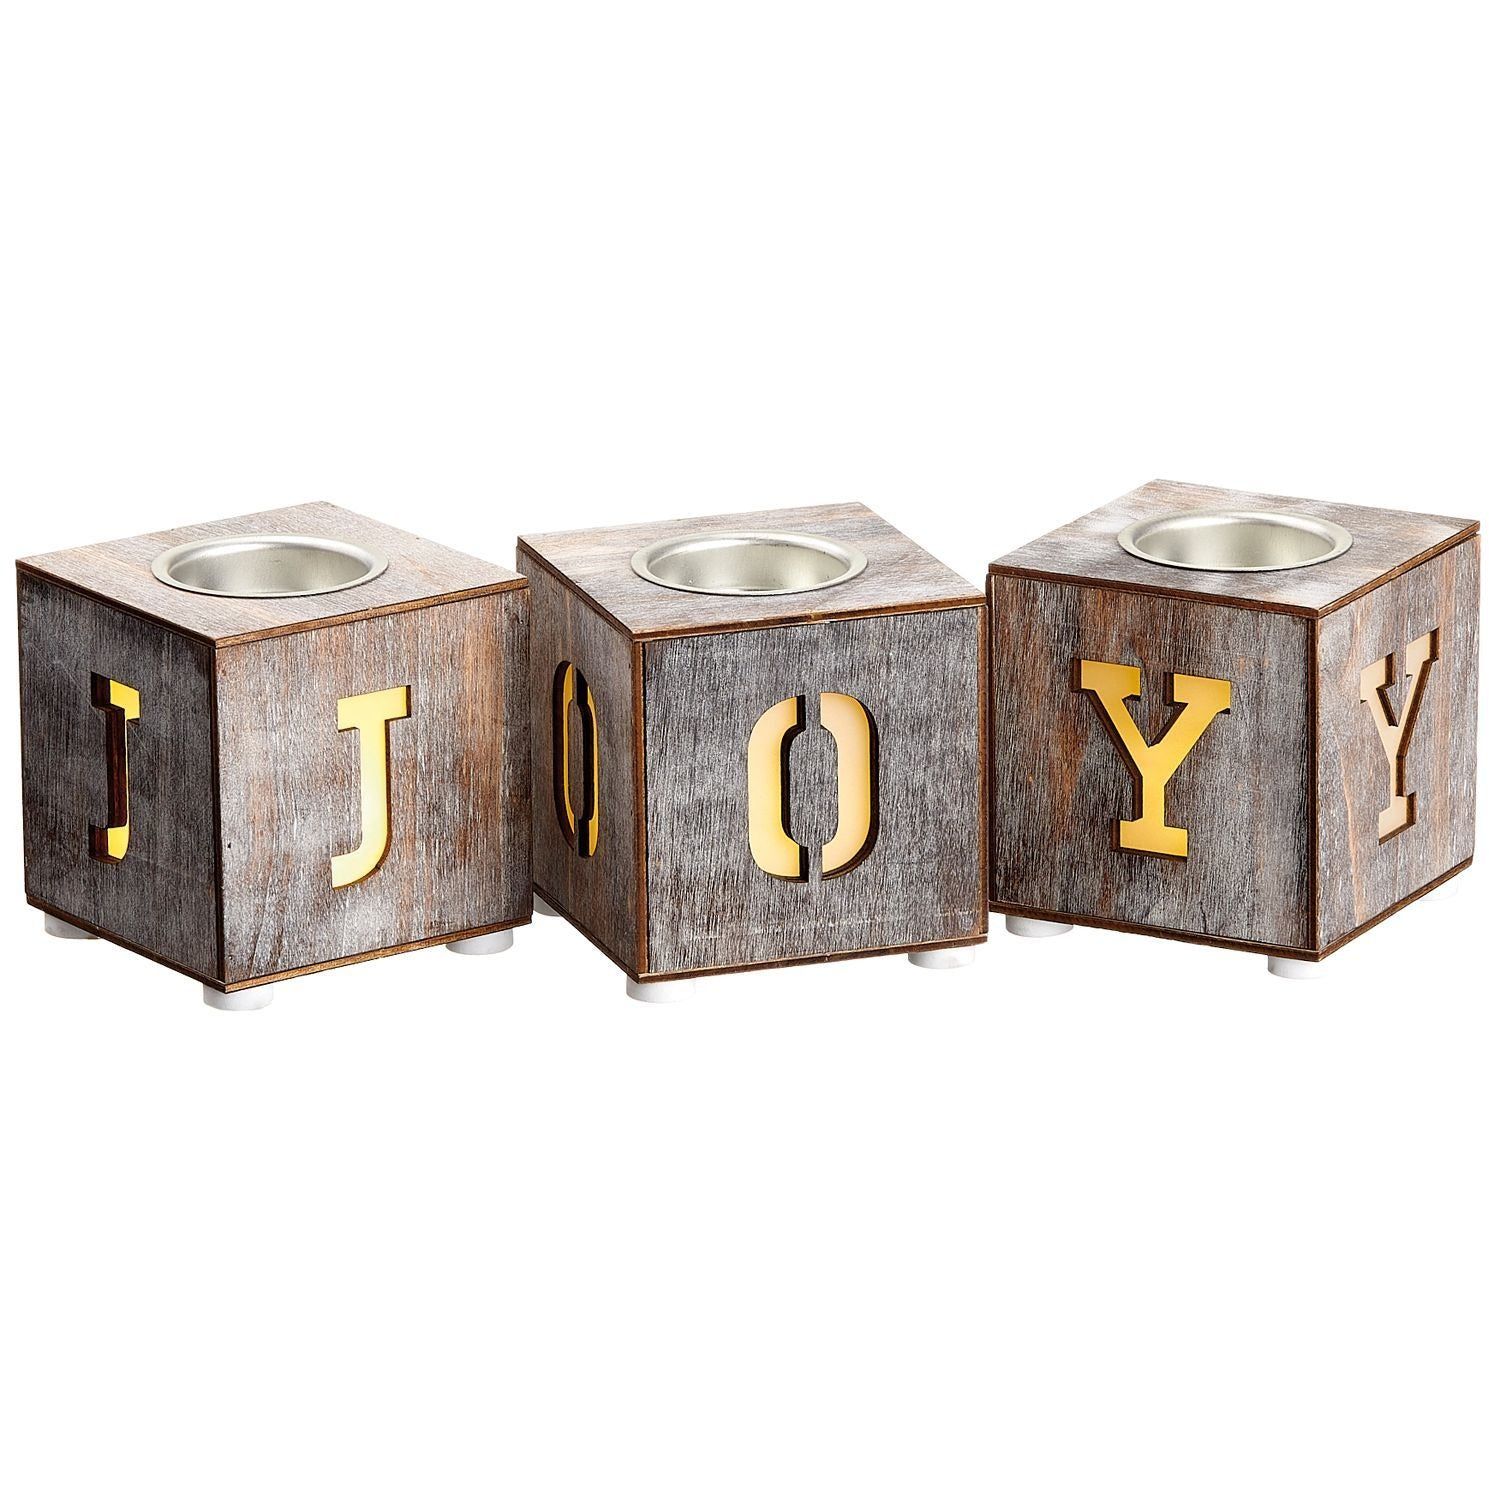 Set 3 Candelabros Joy con Luz LED